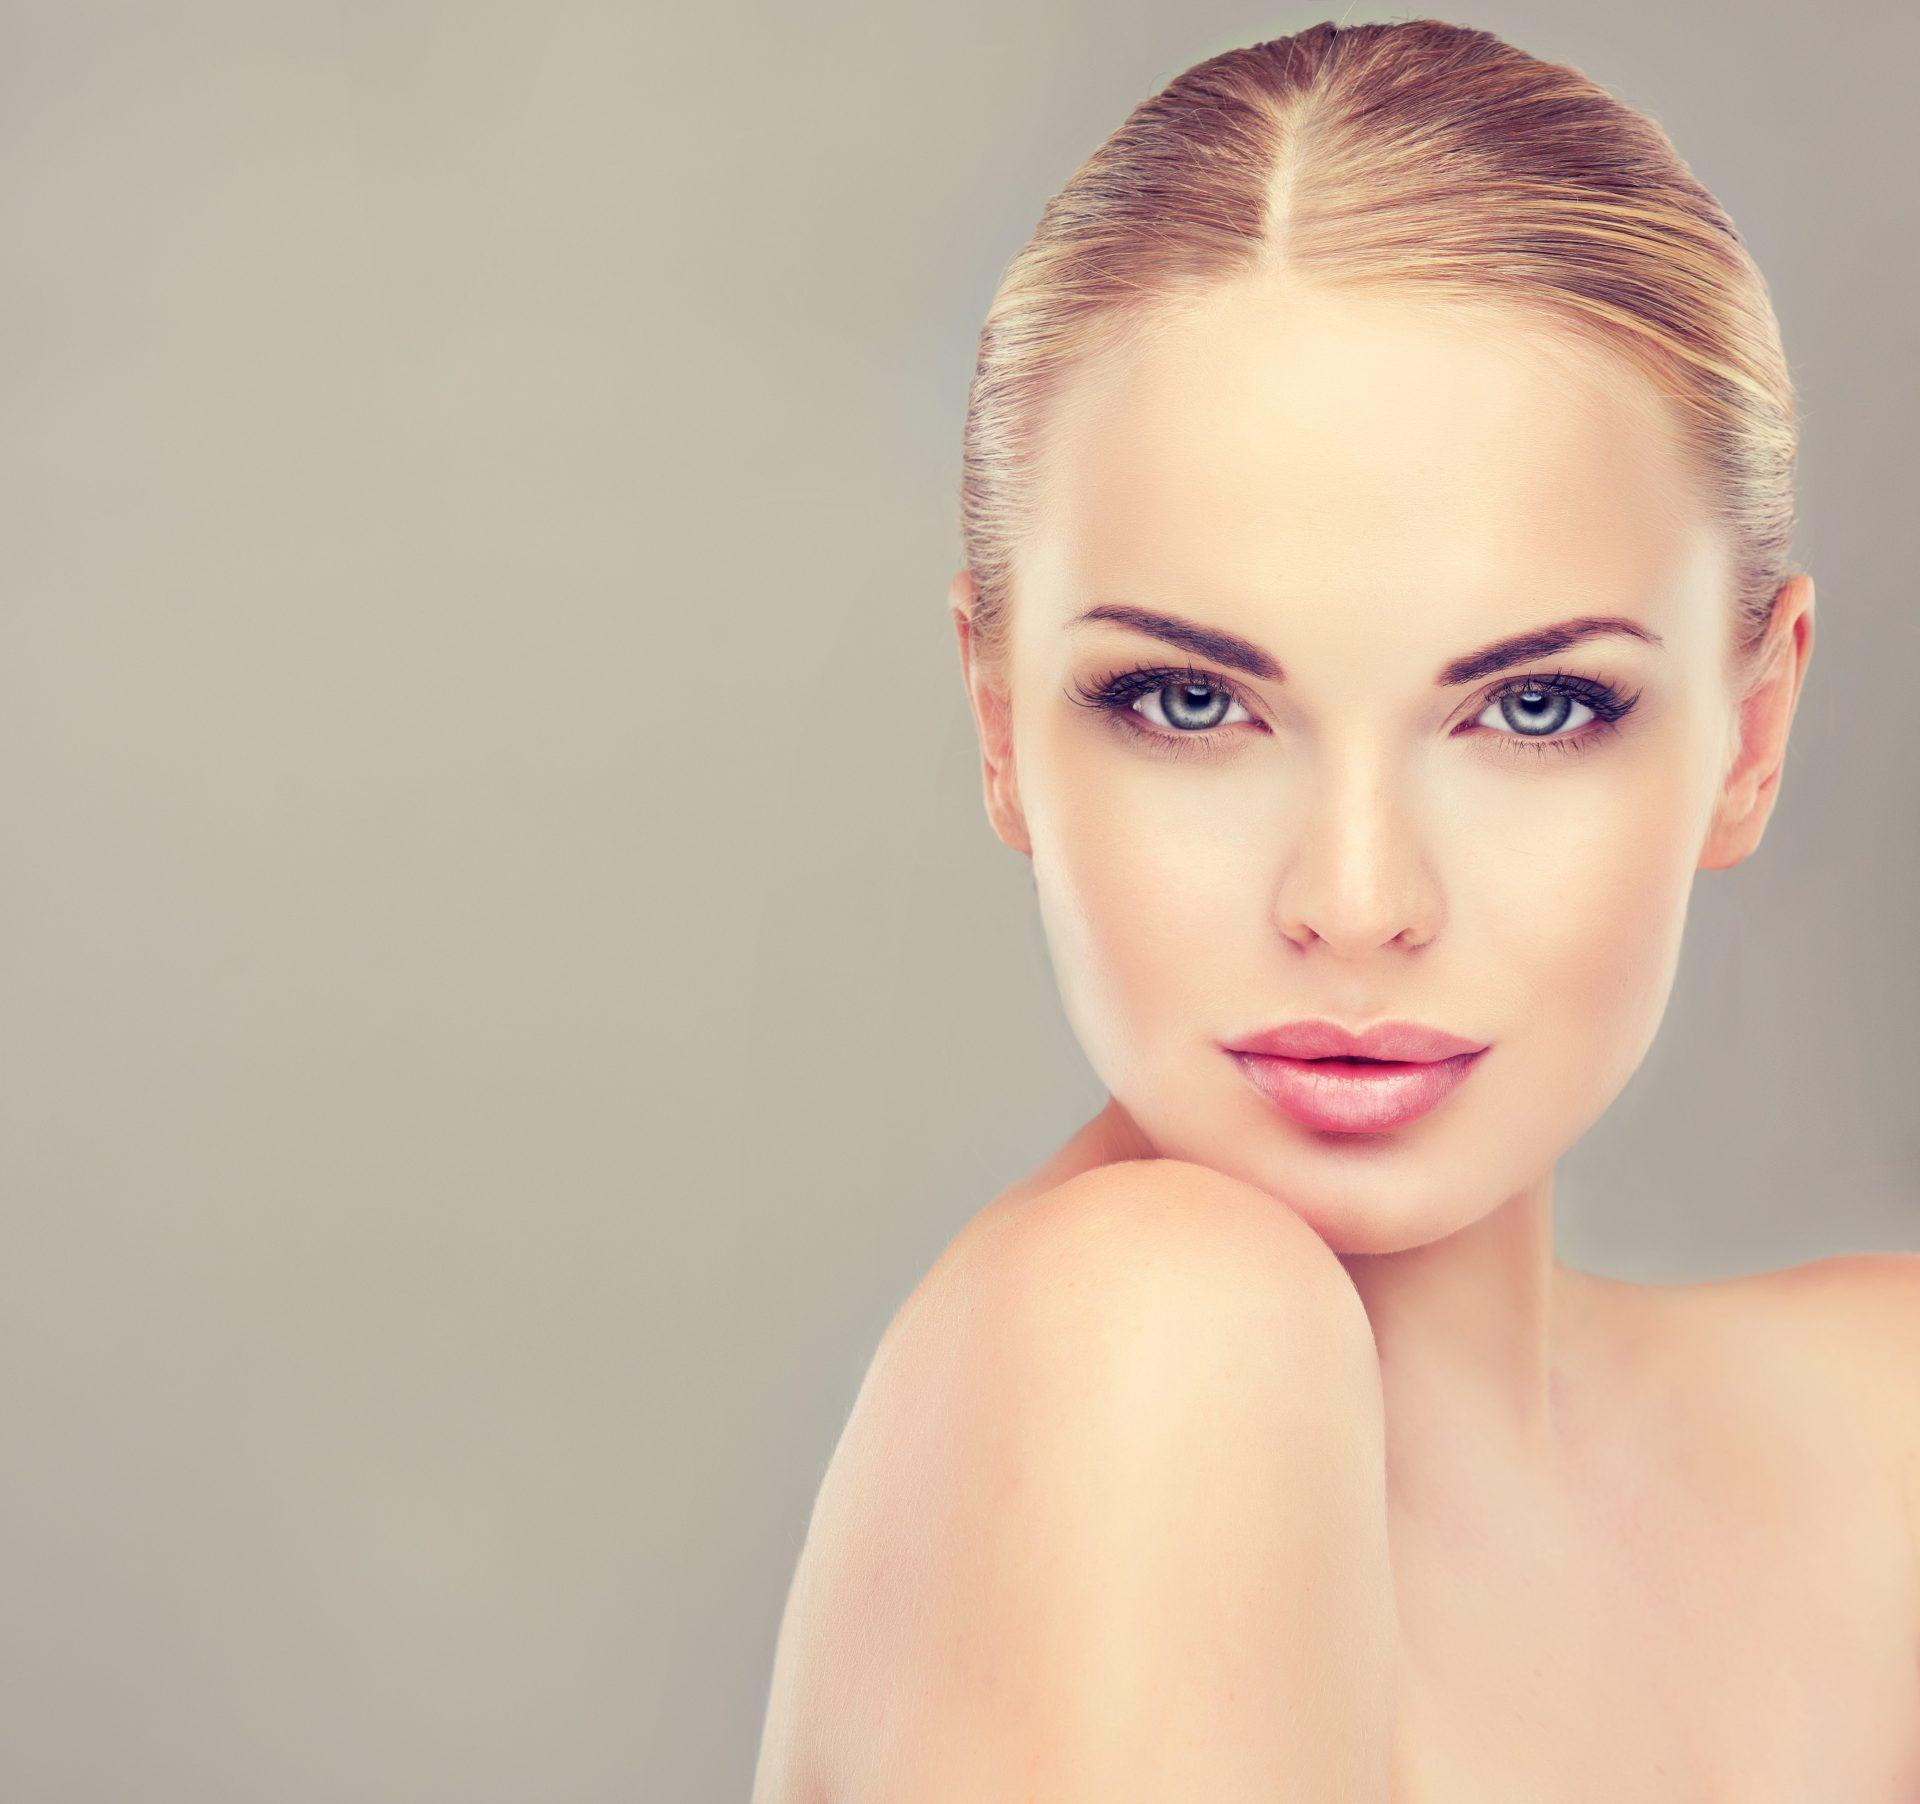 5 Tips to Help You Love The Skin You're In